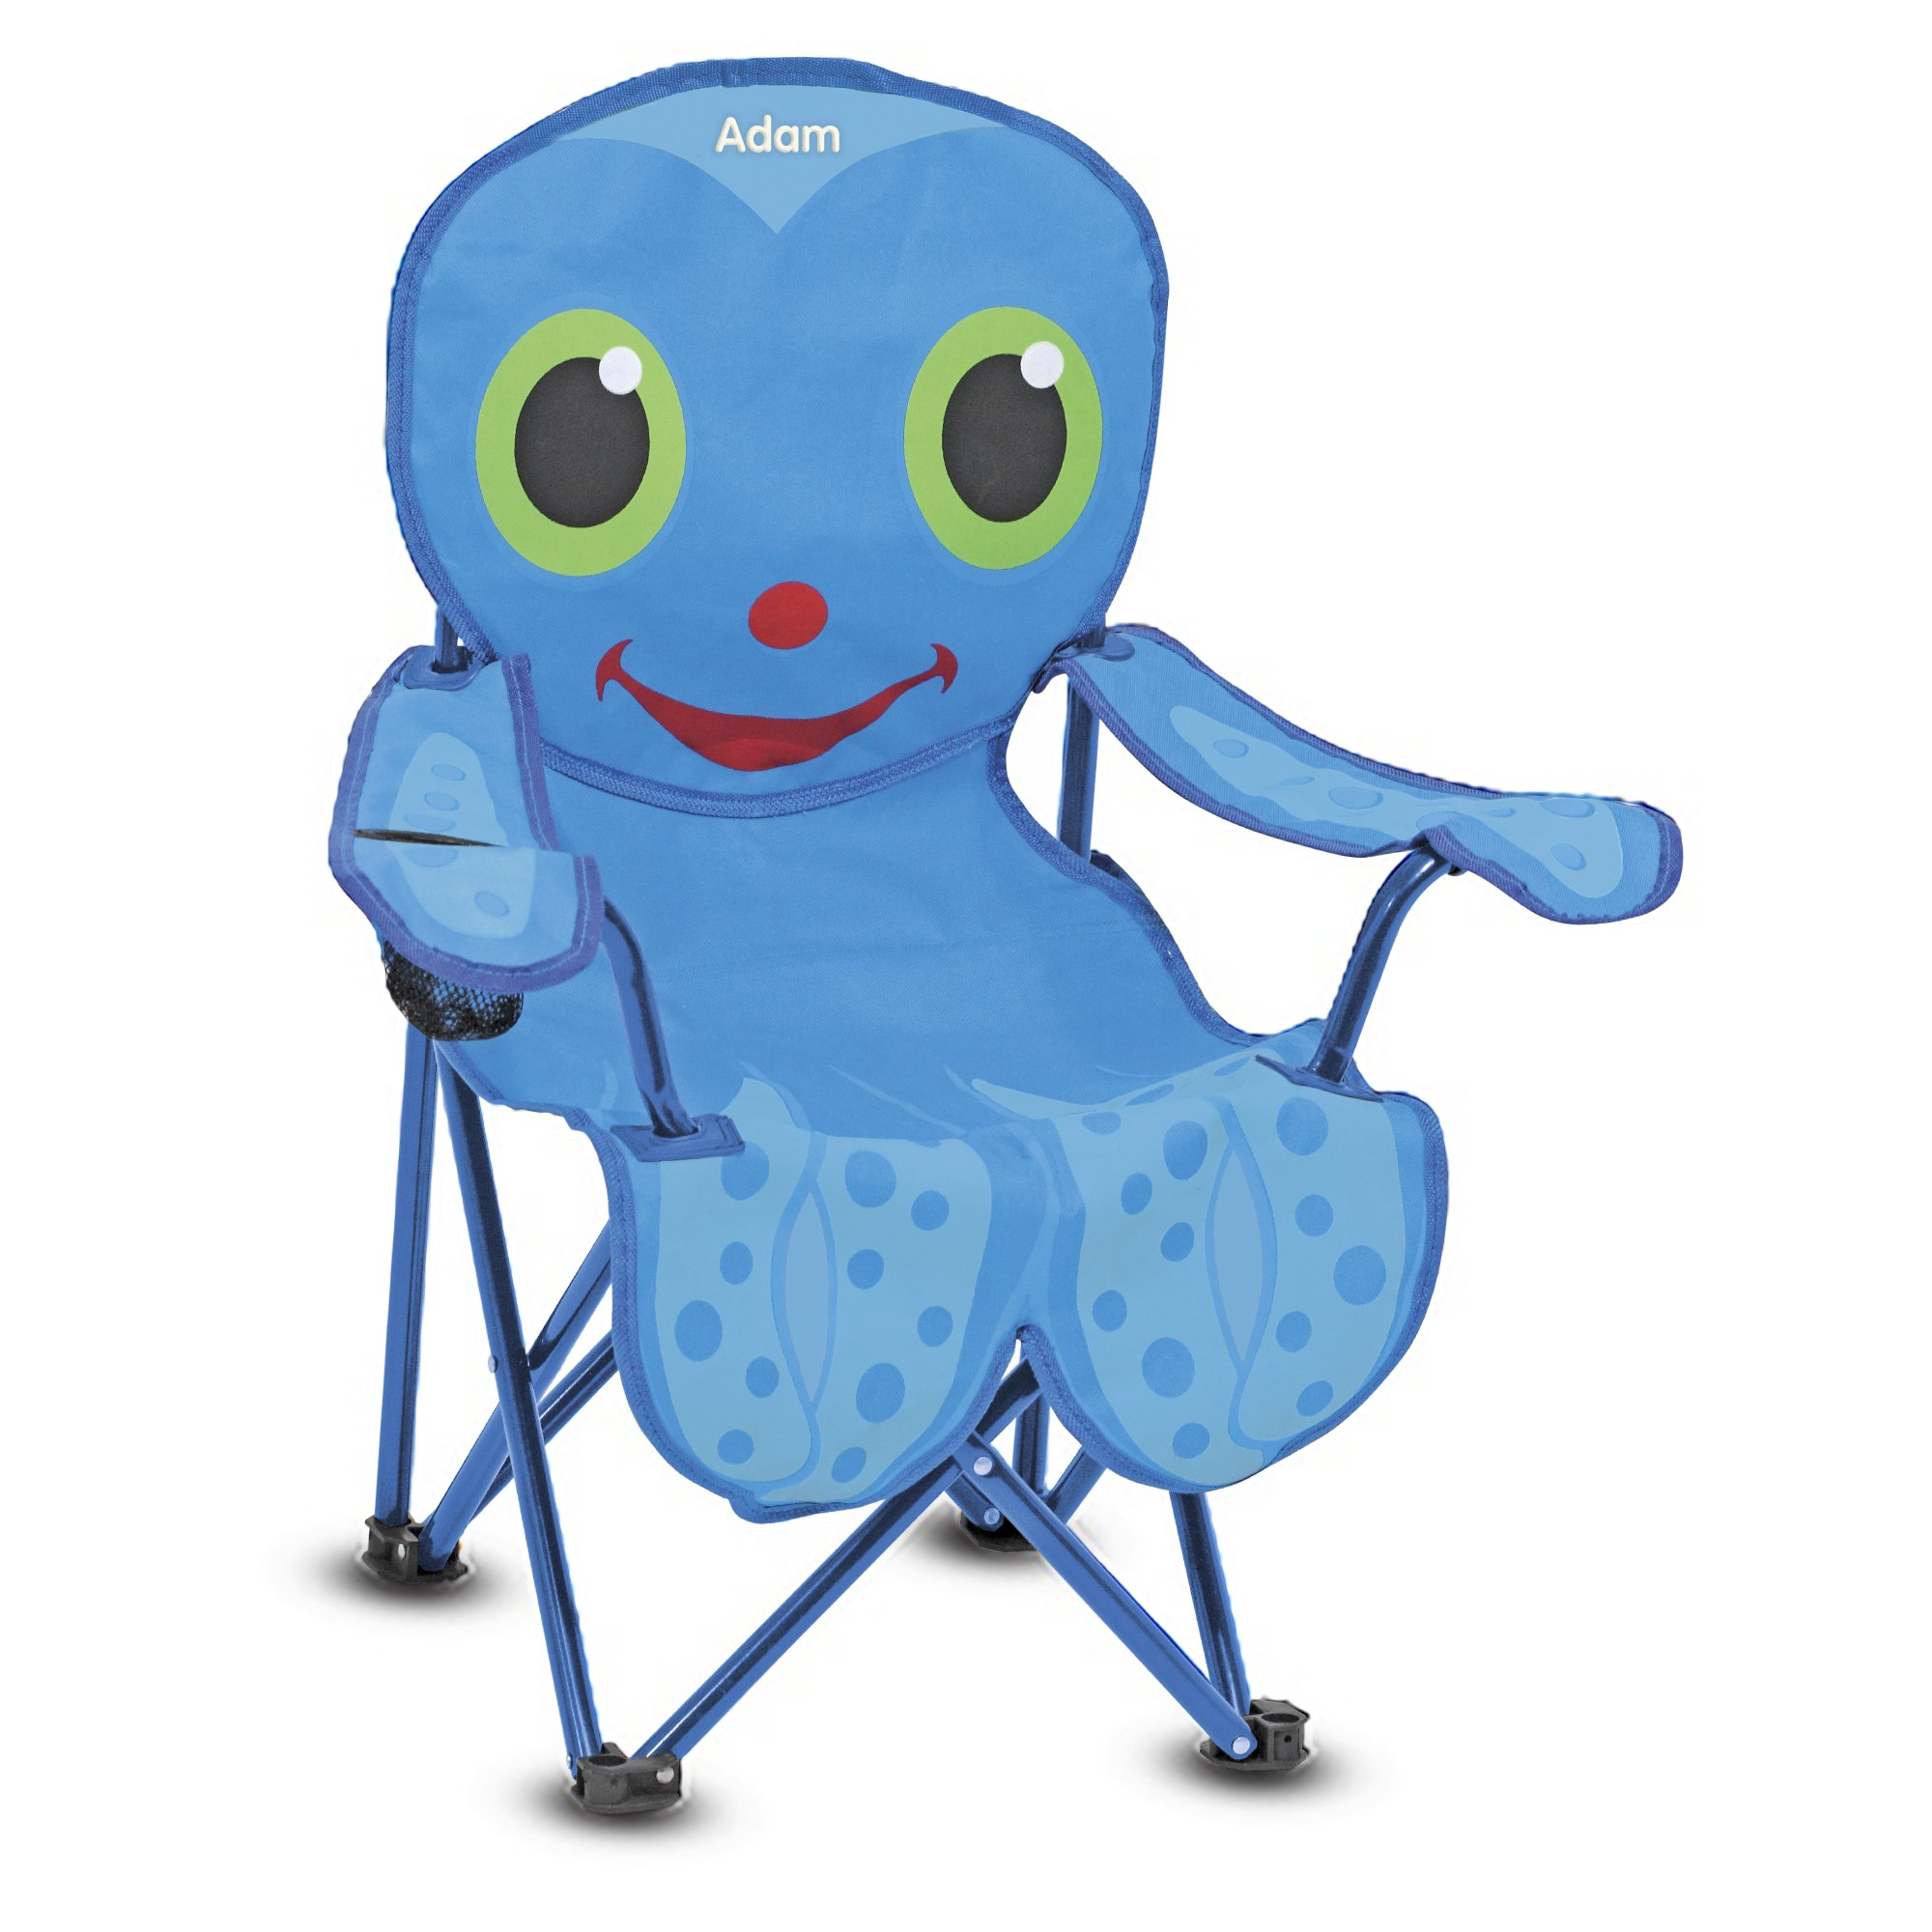 Melissa & Doug Personalized Sunny Patch Flex Octopus Folding Beach Chair For Kids Outdoor by Melissa & Doug (Image #1)